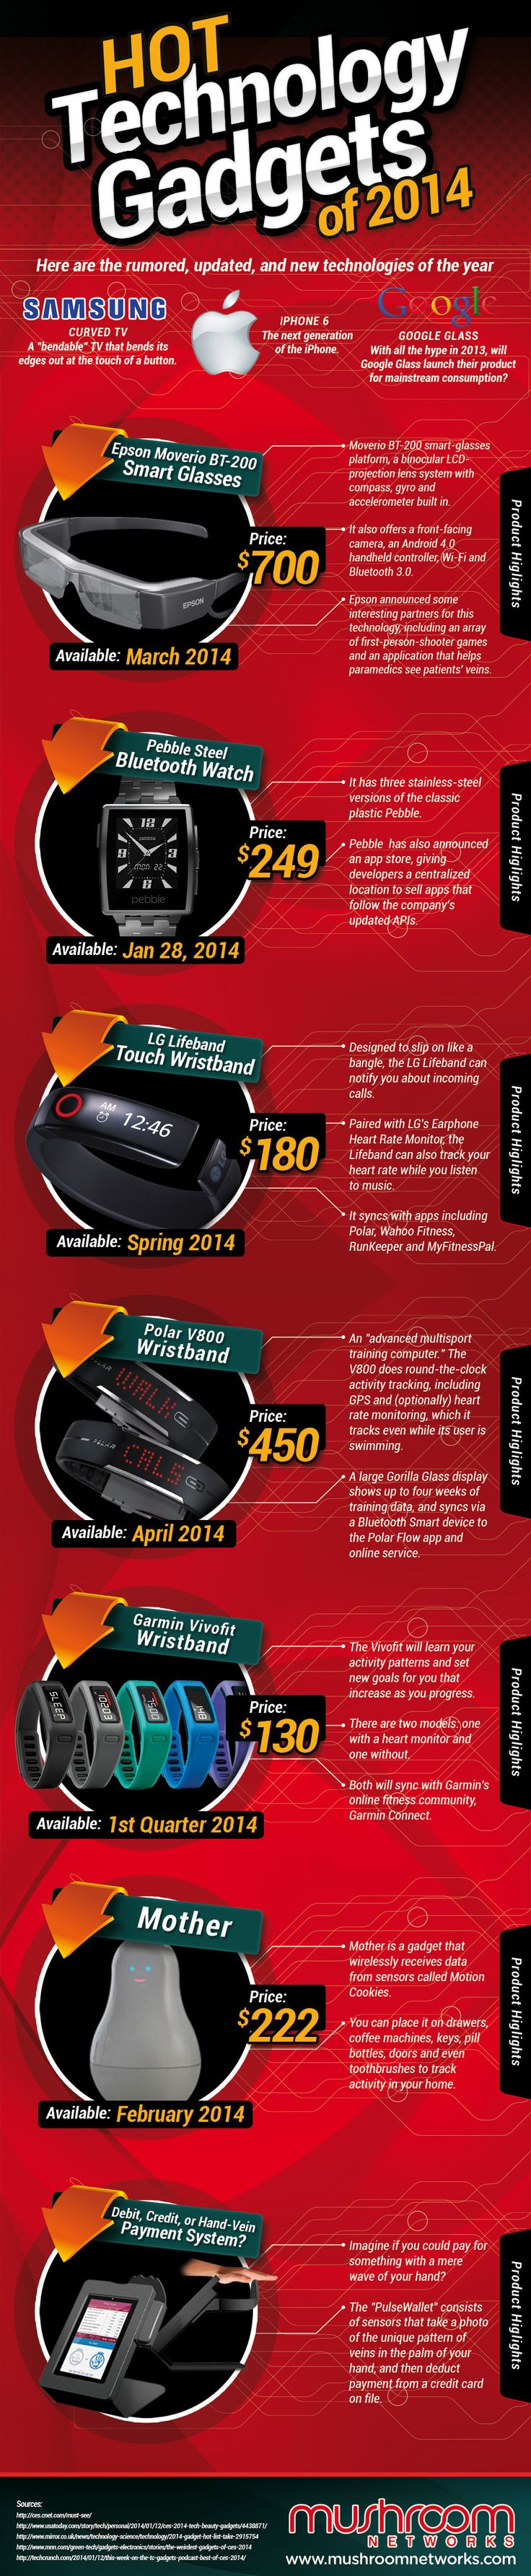 Hot Technology Gadgets of 2014   #Technology #Gadgets #infographic